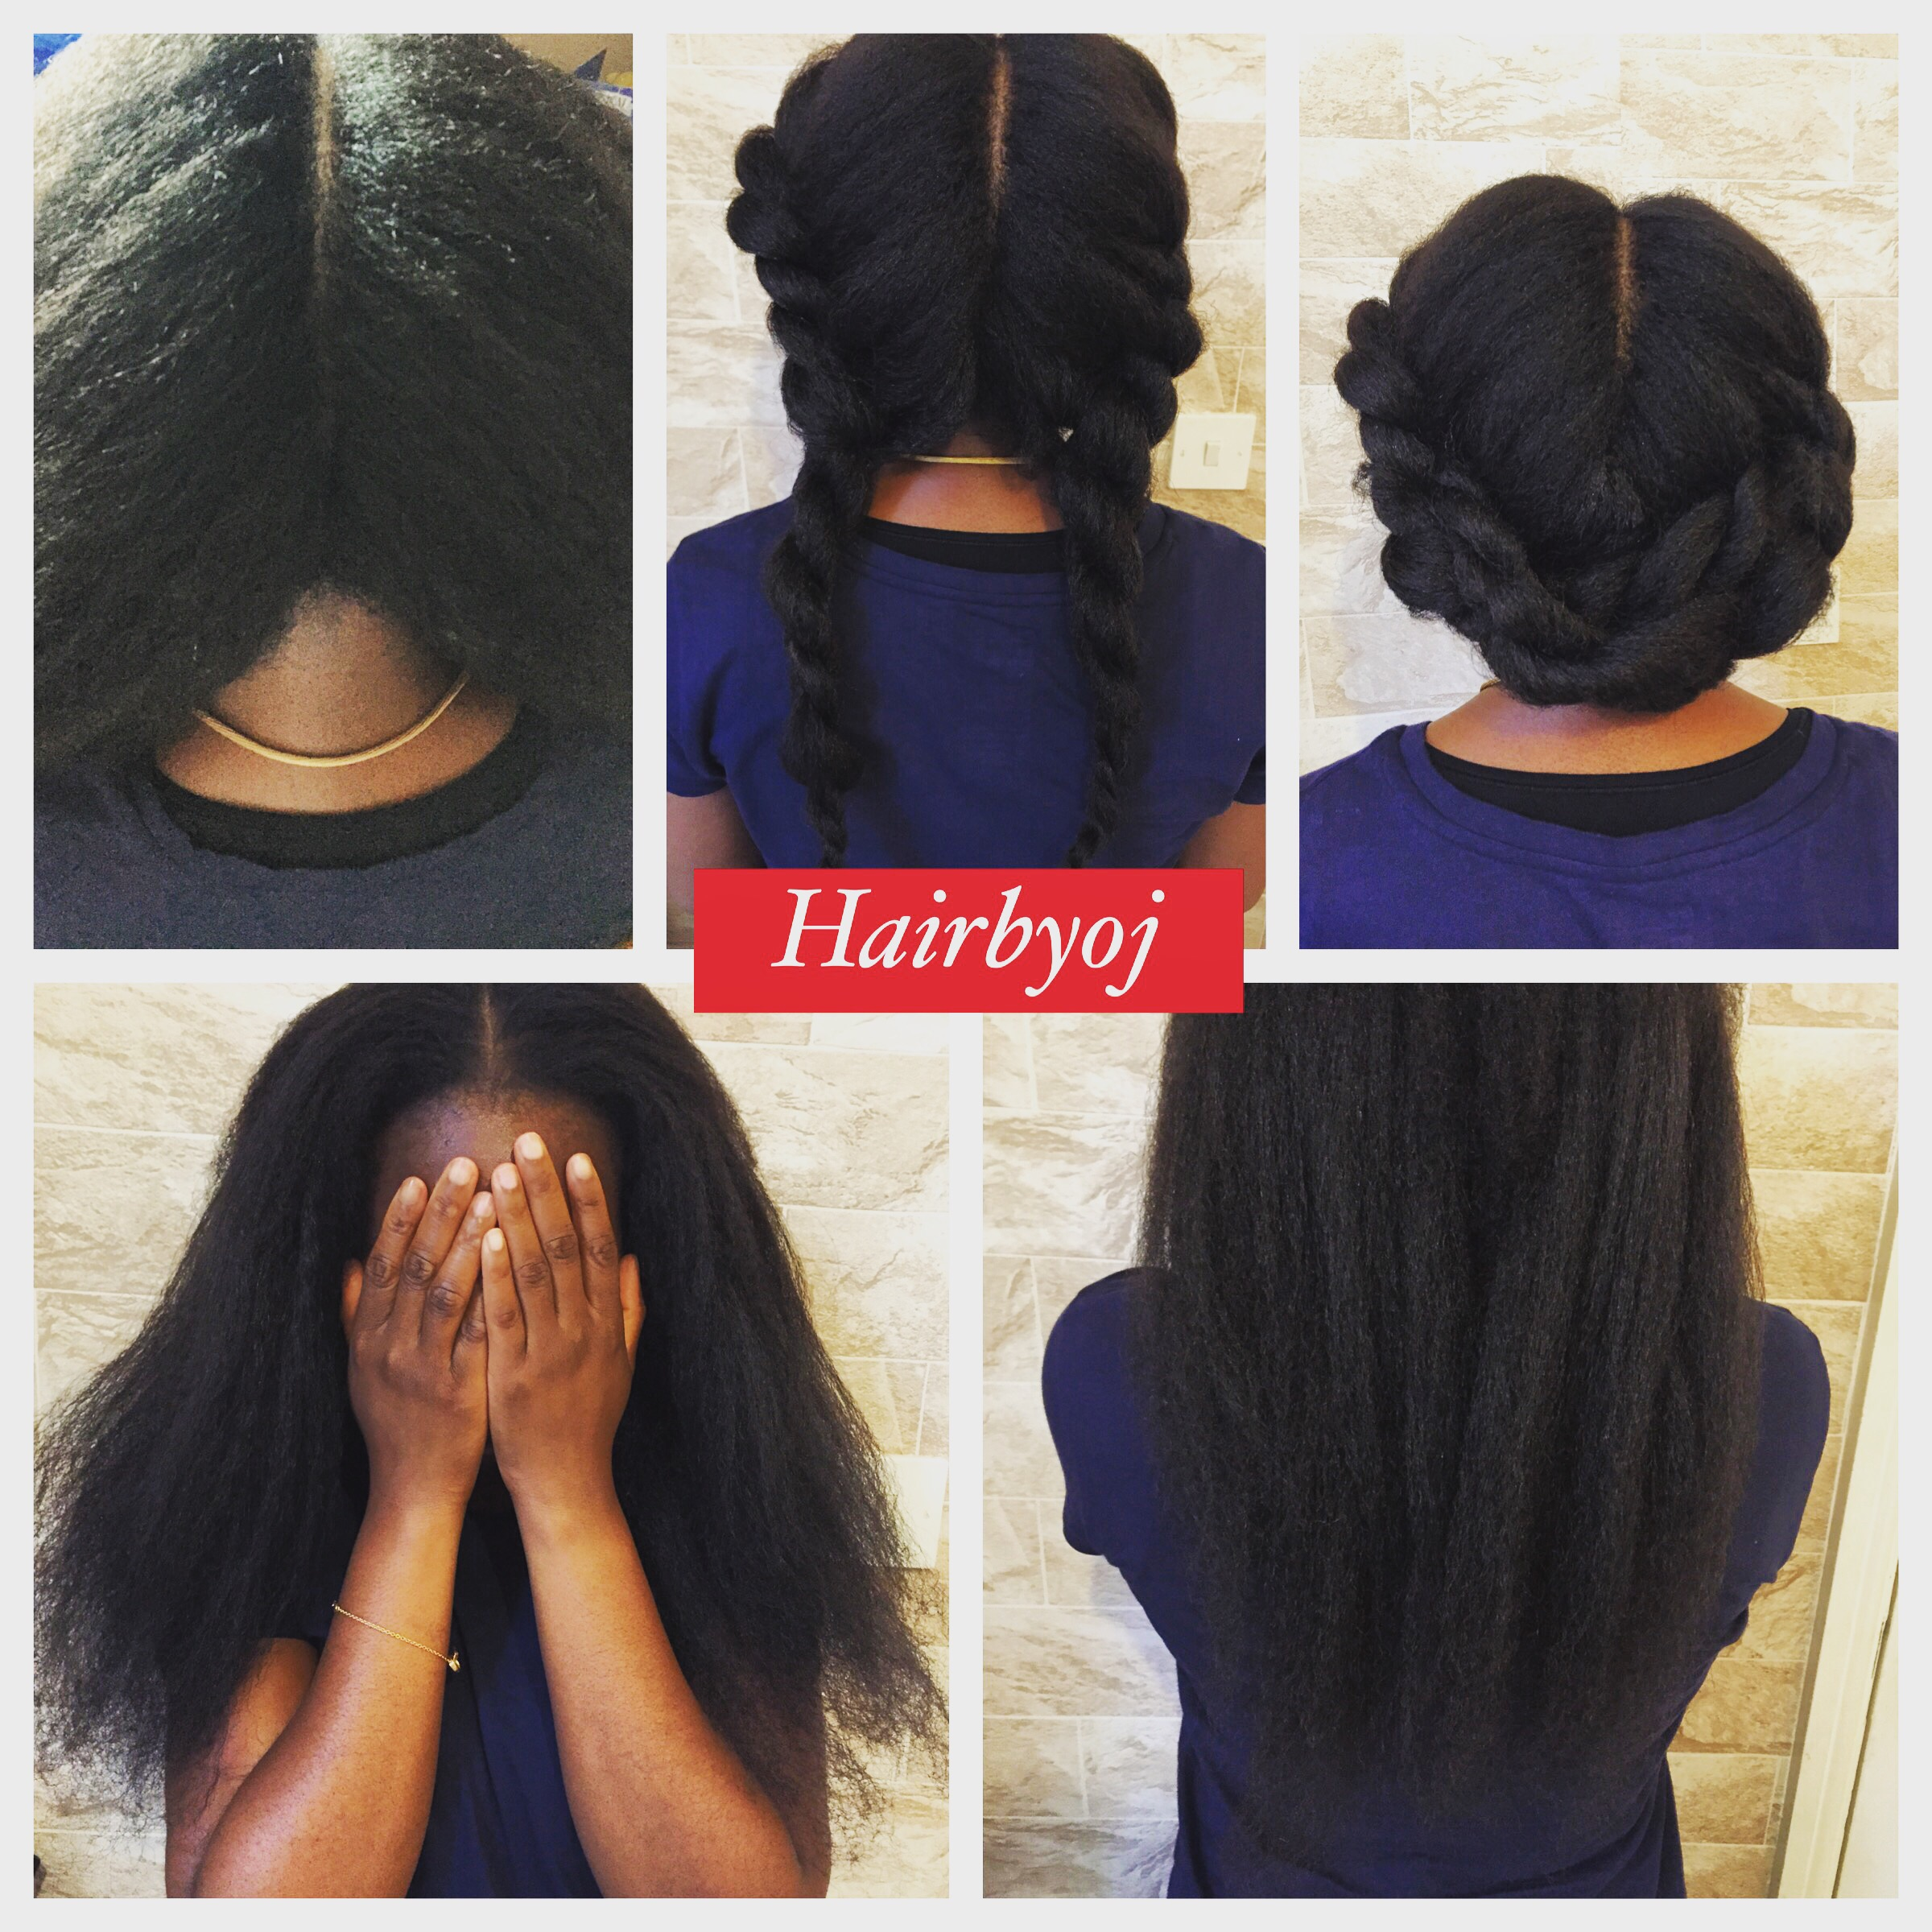 Crochet Hair Vixen : ... way part vixen crochet braids with blowdried Marley hair ? hairbyoj